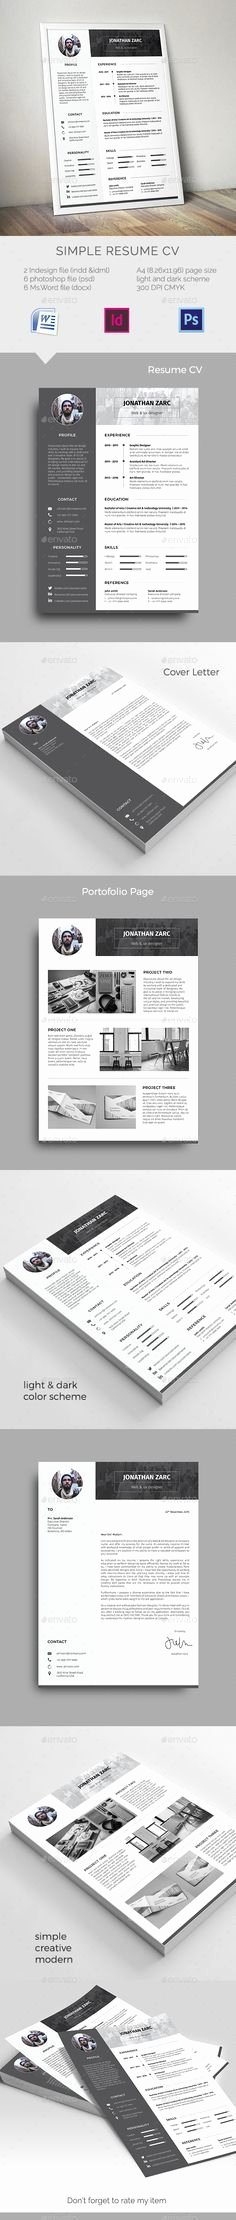 Brag Book Cover Page Template Unique Free Ms Word Resume and Cv Template